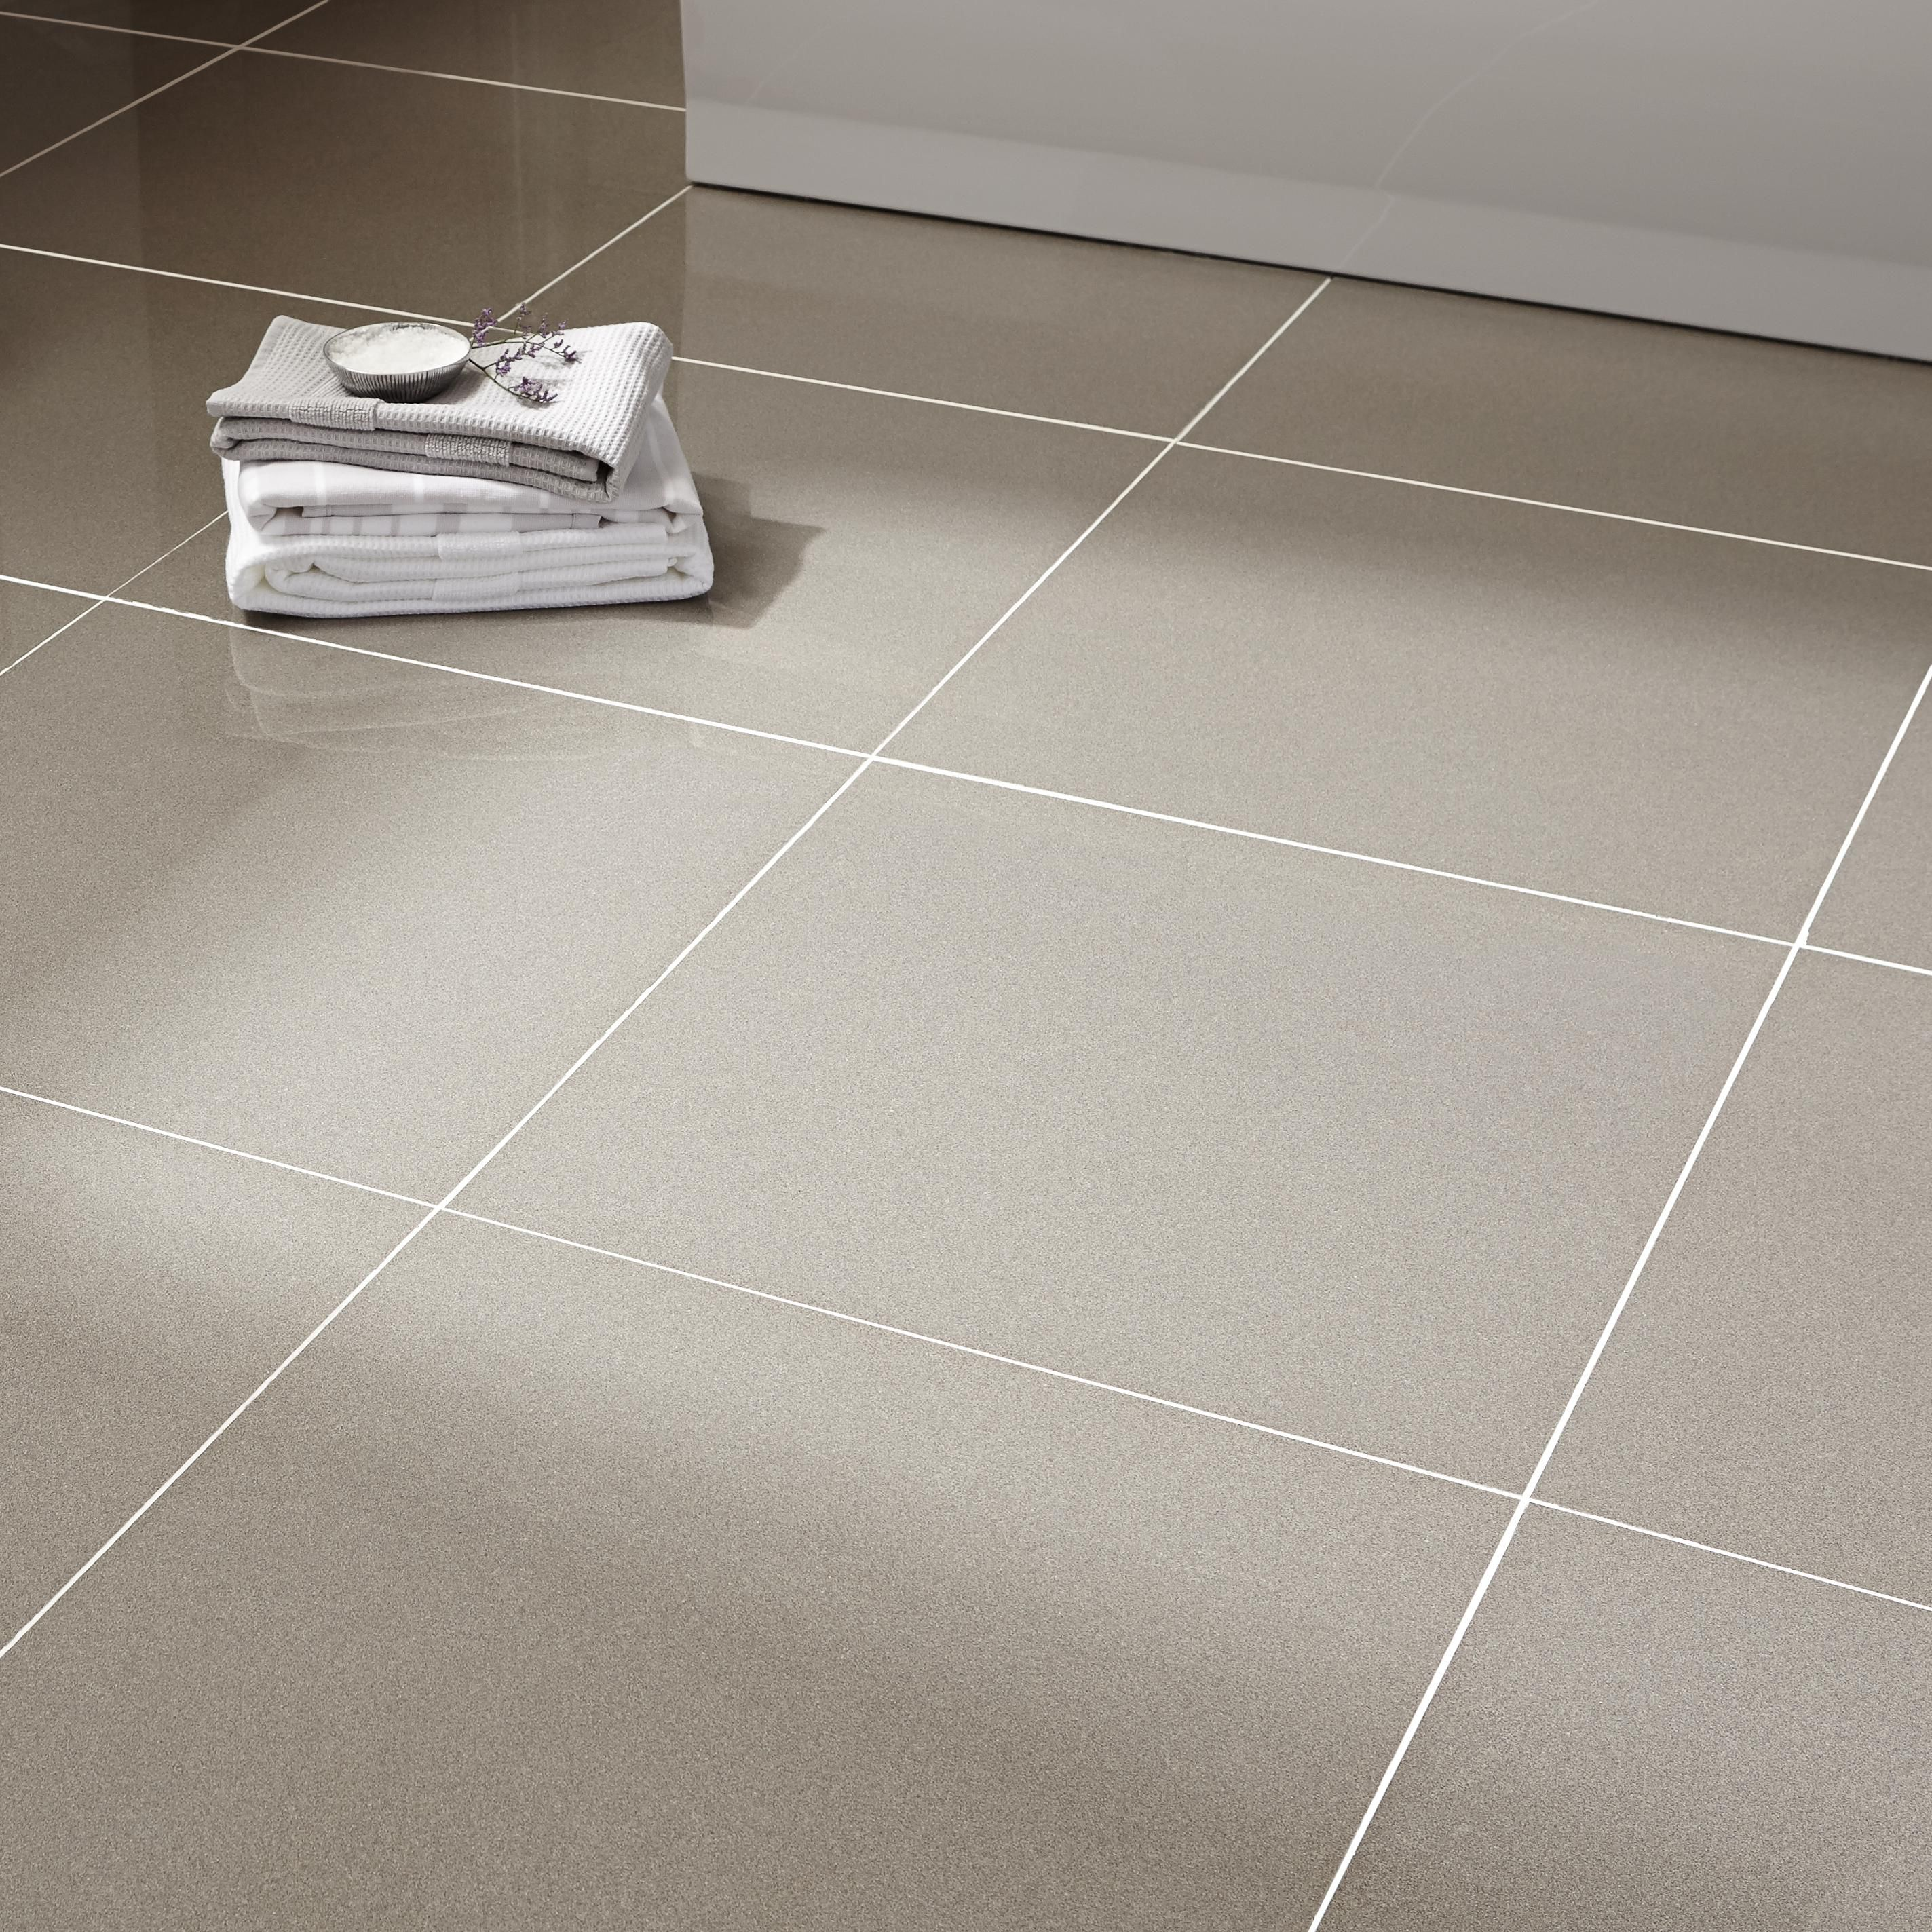 Laying tiles on walls and floors